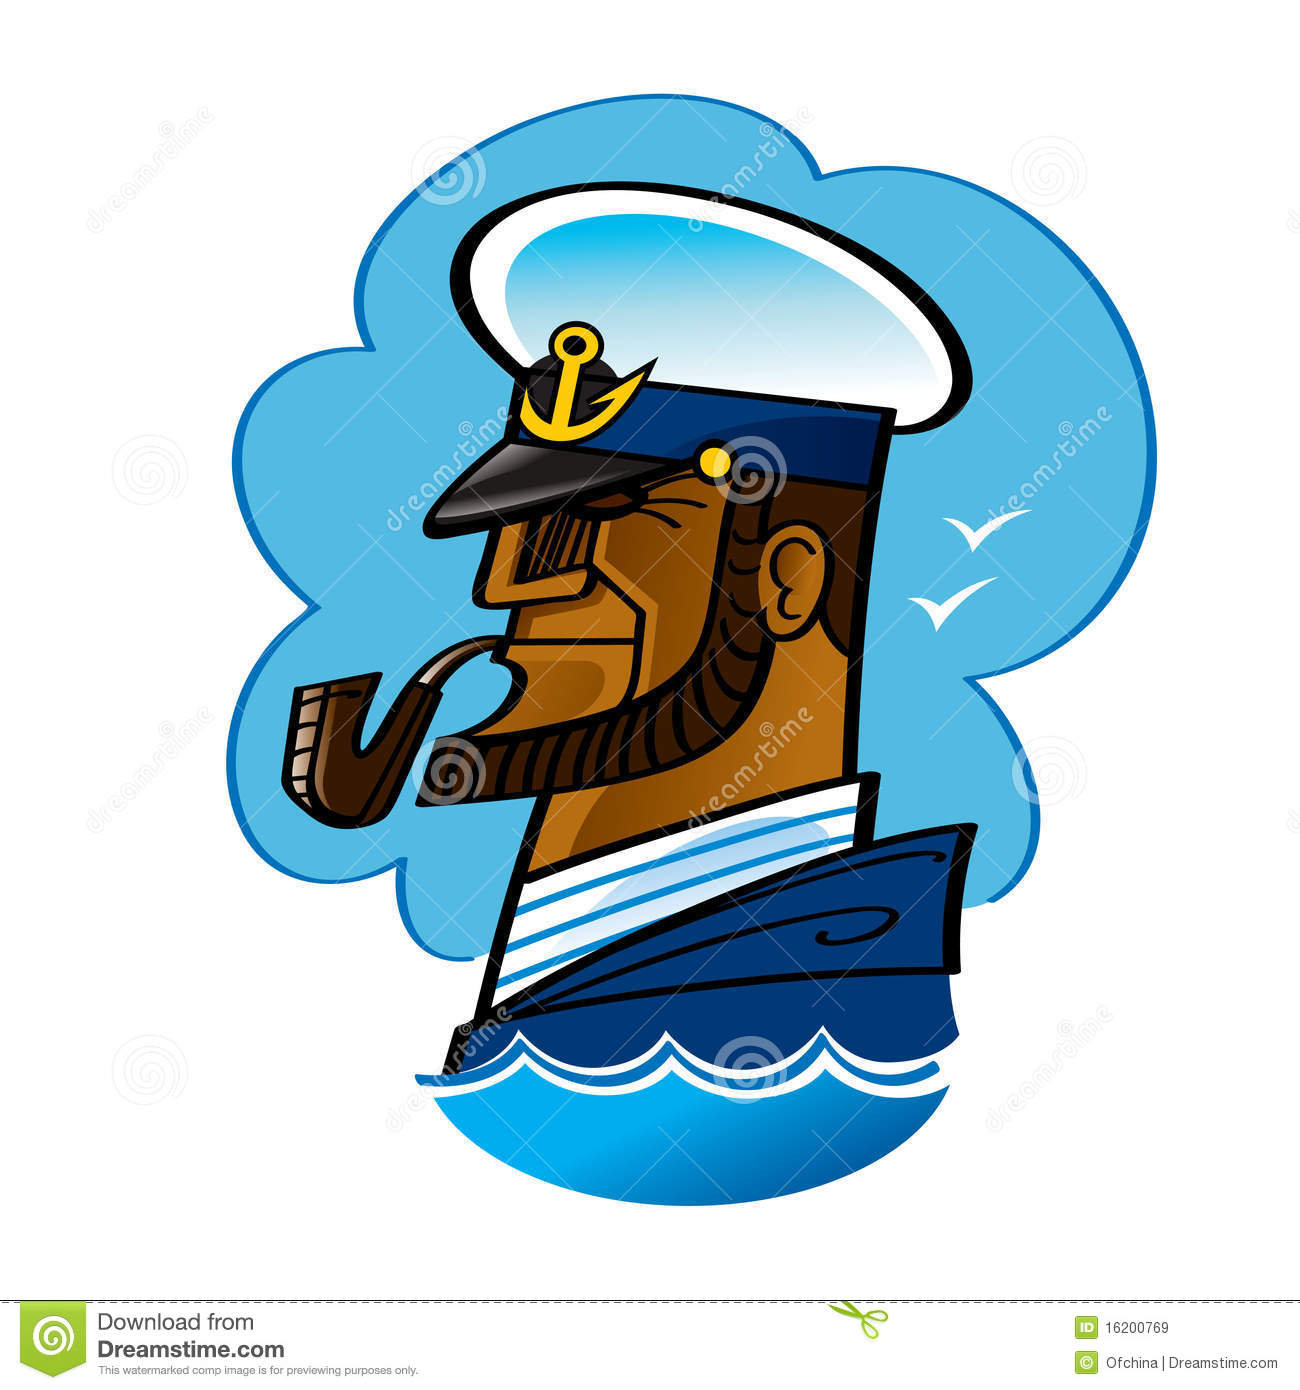 Sea Captain - waves, blue sky and brave man with smoking pipe.